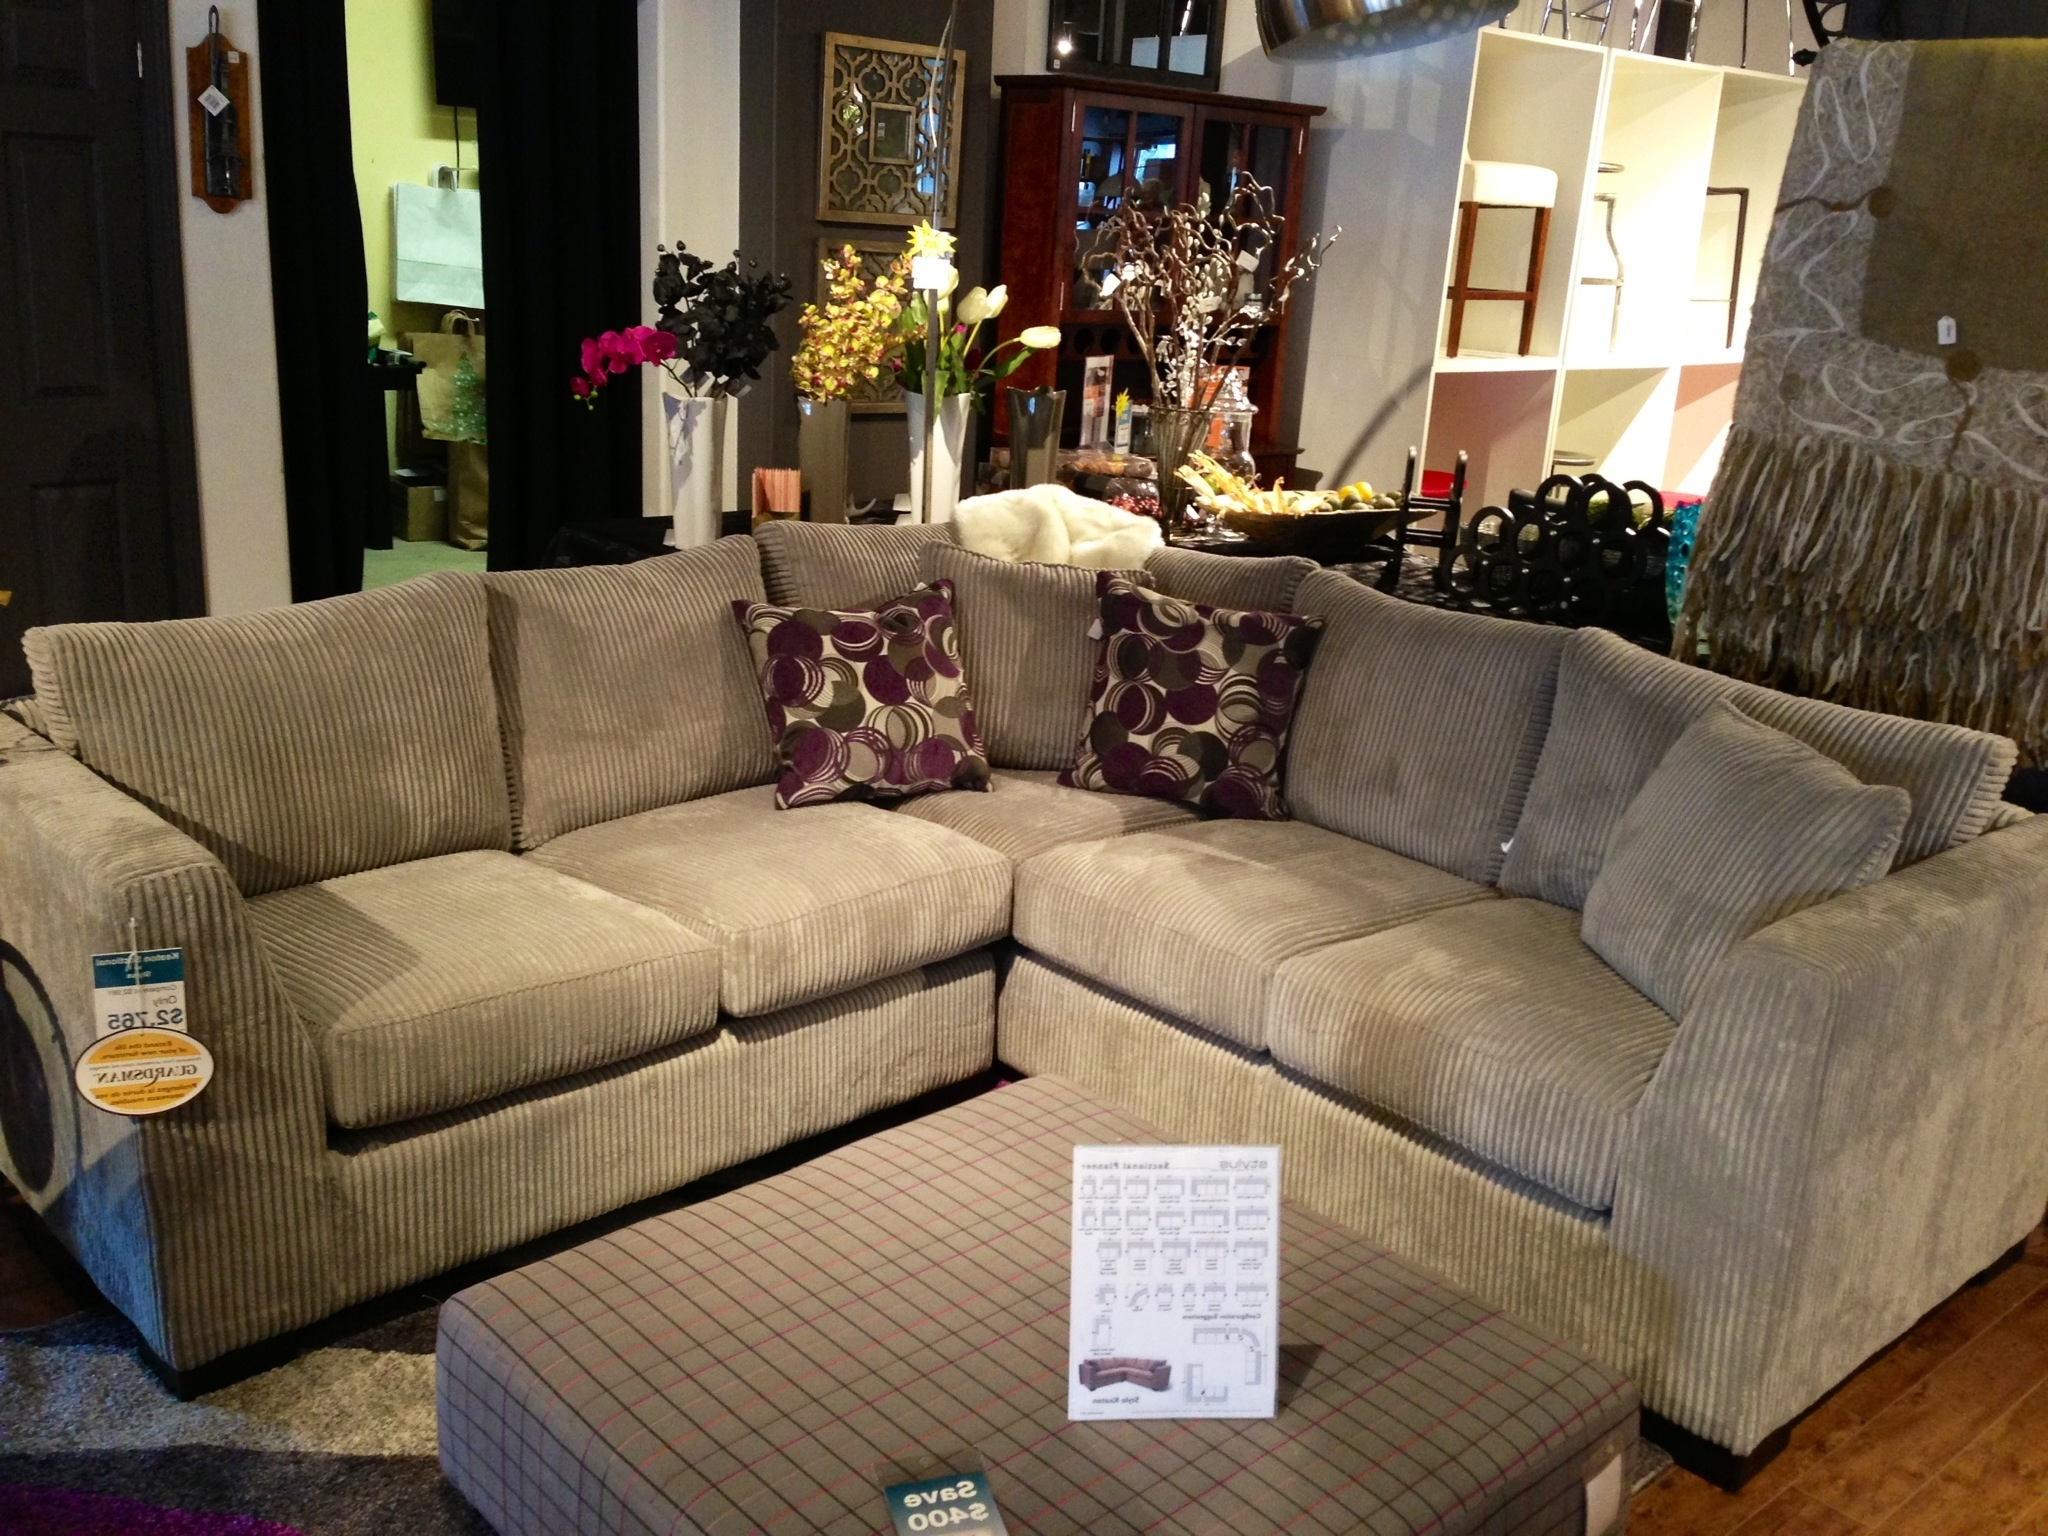 Keaton Sofa Sectionalstylus. Canadian Company Featured At Pertaining To Well Known Ontario Canada Sectional Sofas (Gallery 6 of 20)